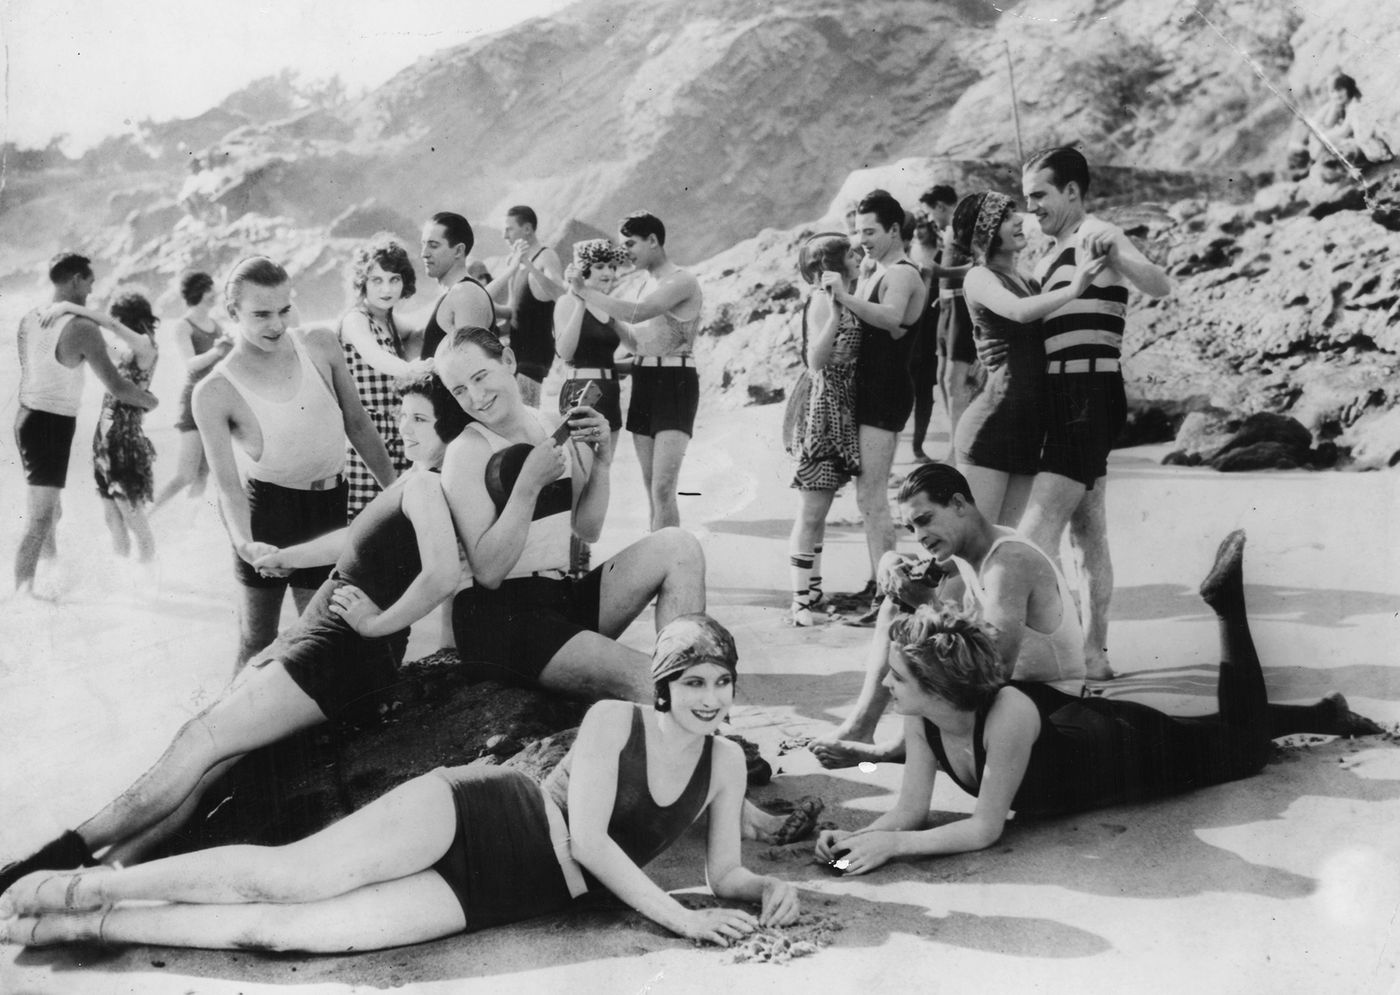 03619d430f5 How the bathing suit killed the bathing skirt - Vox